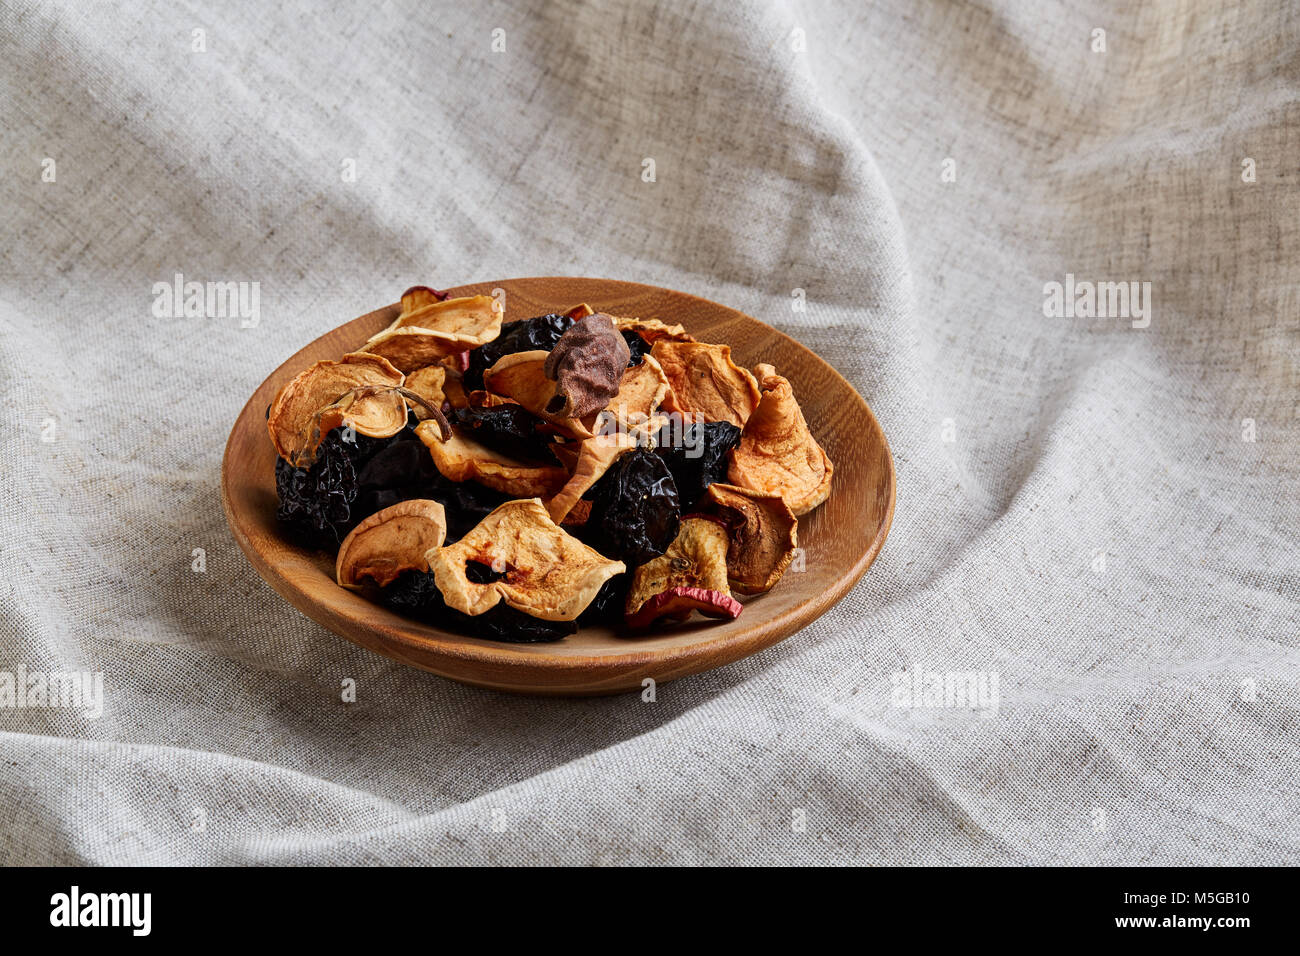 Wooden Plate With Dried Fruits On A Light Grey Cotton Tablecloth Or Napkin,  Close Up. Nutritious And Tasty Snack. Healthy Lifestyle Concept.